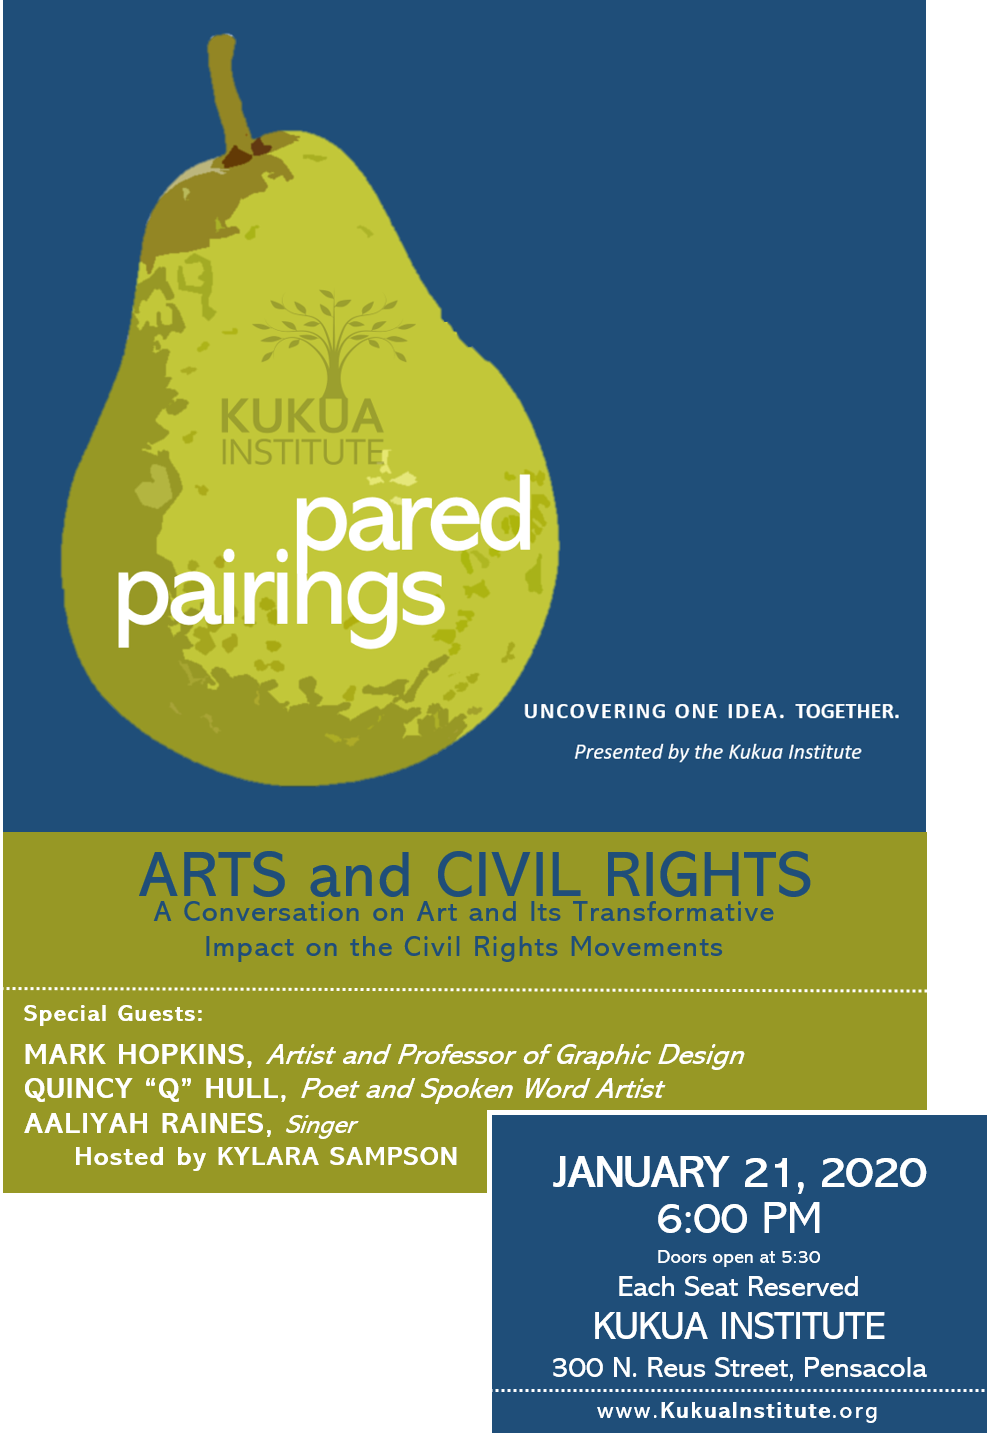 Pared Pairings Flyer - January 21 2020